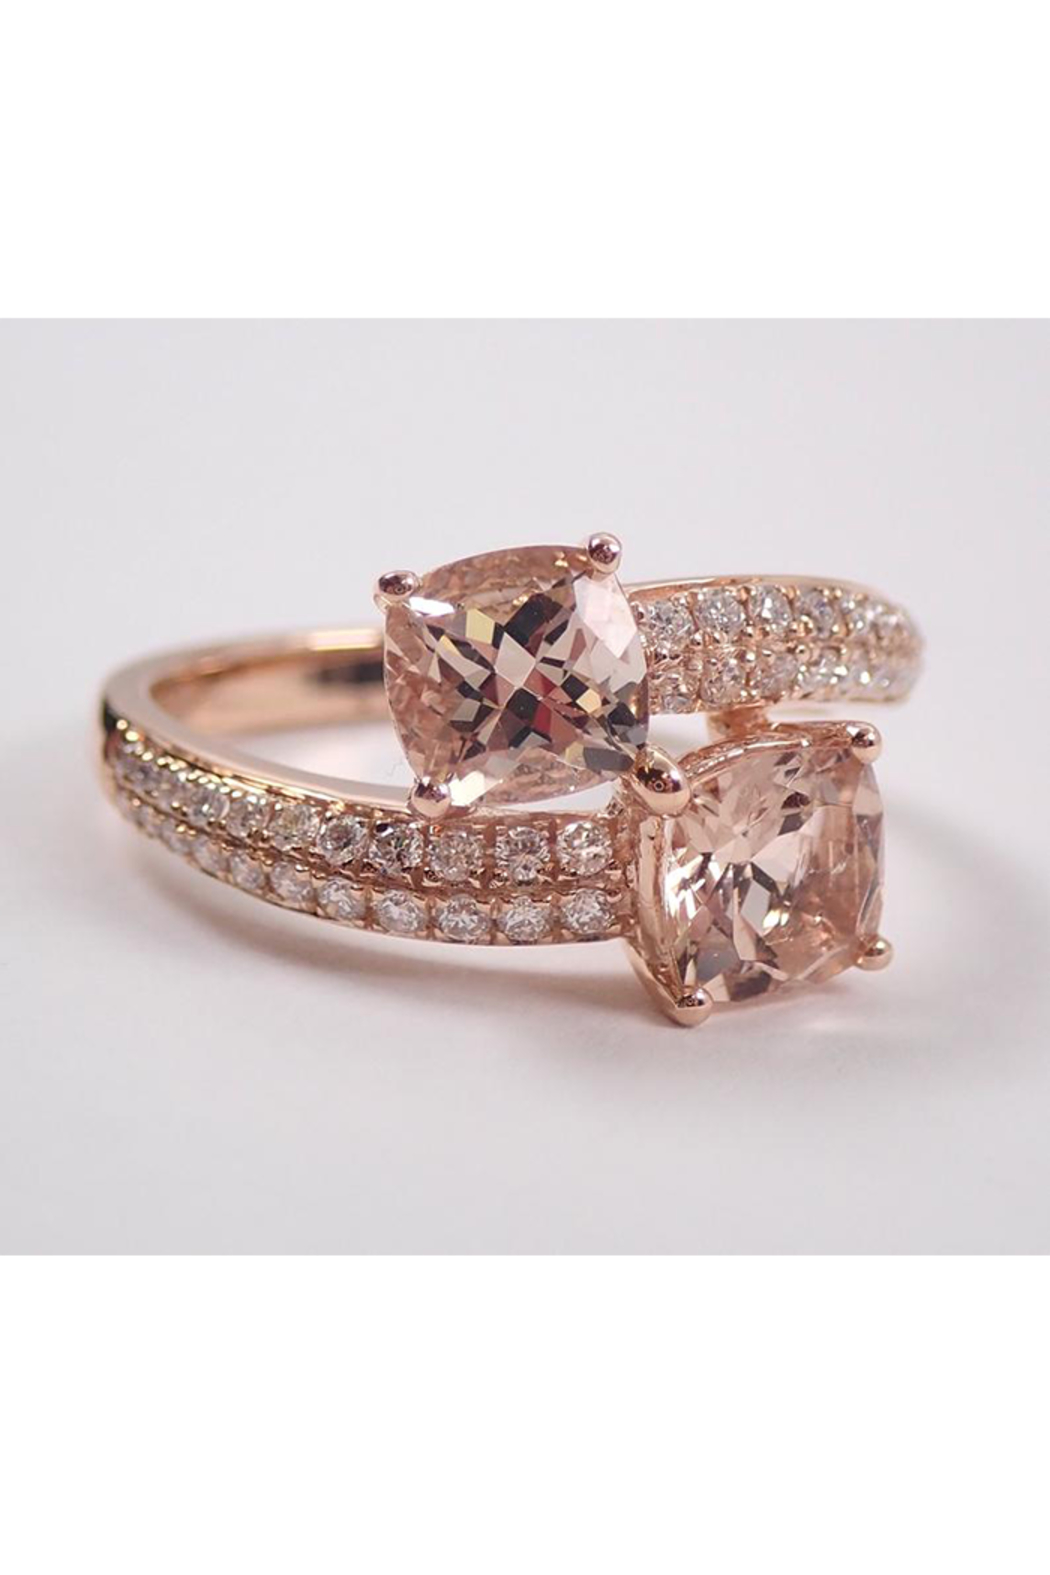 Margolin & Co 14K Rose Gold Diamond and Cushion Cut Morganite Bypass Ring Size 7 Pink Aqua Aquamarine Beryl - Front Full Image